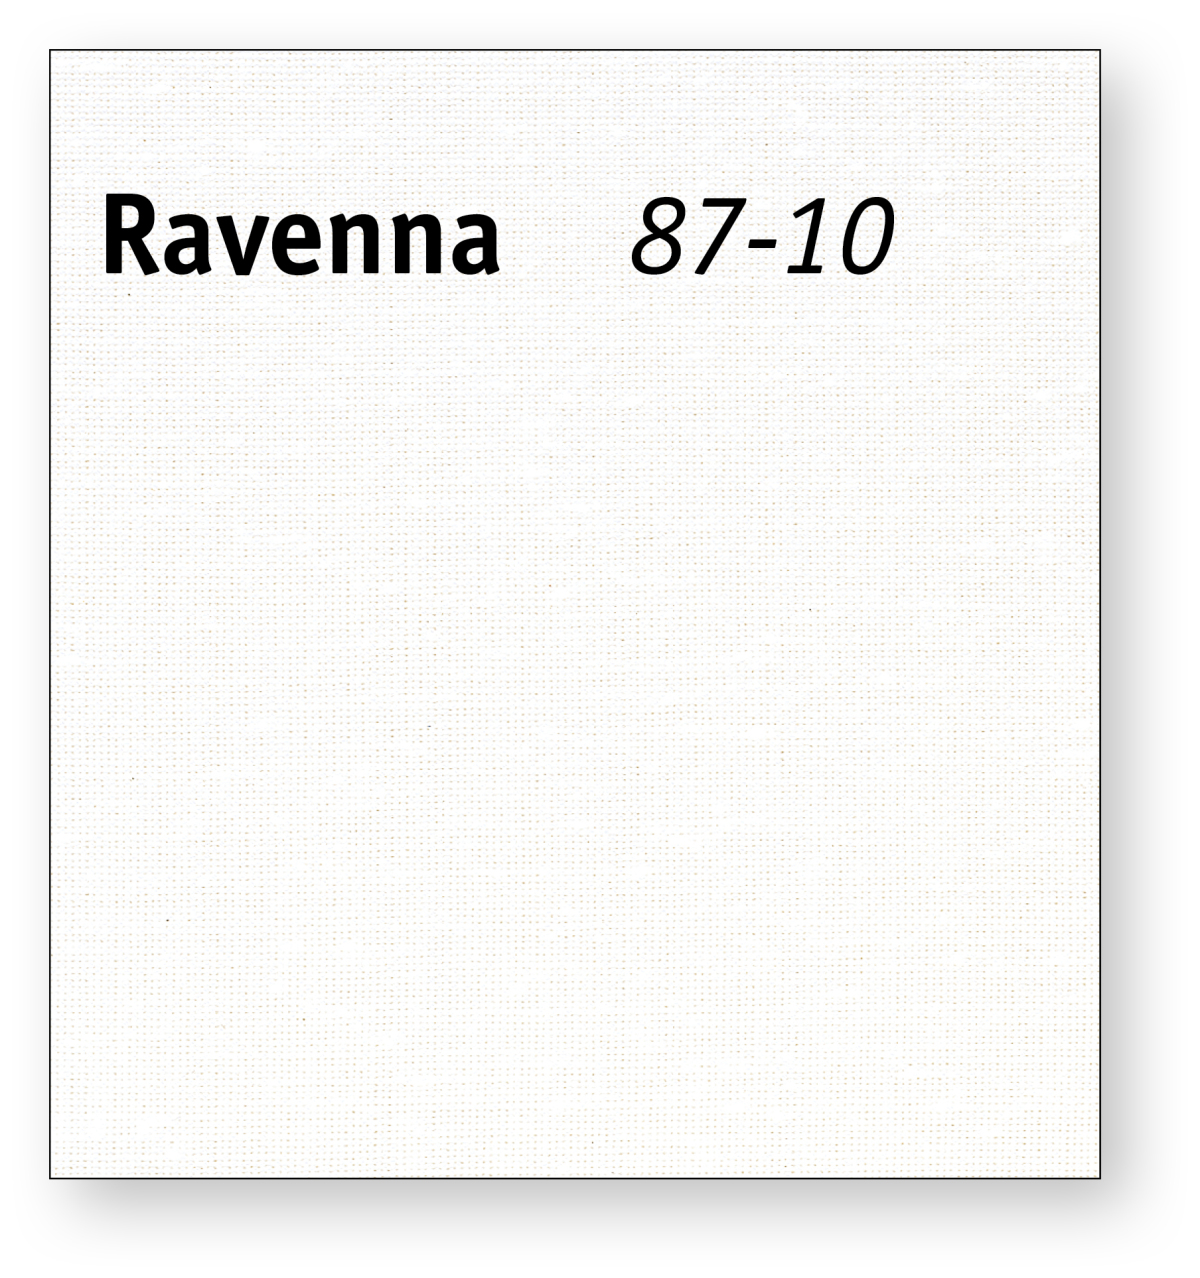 206-87-10-Ravenna-maxres-MR